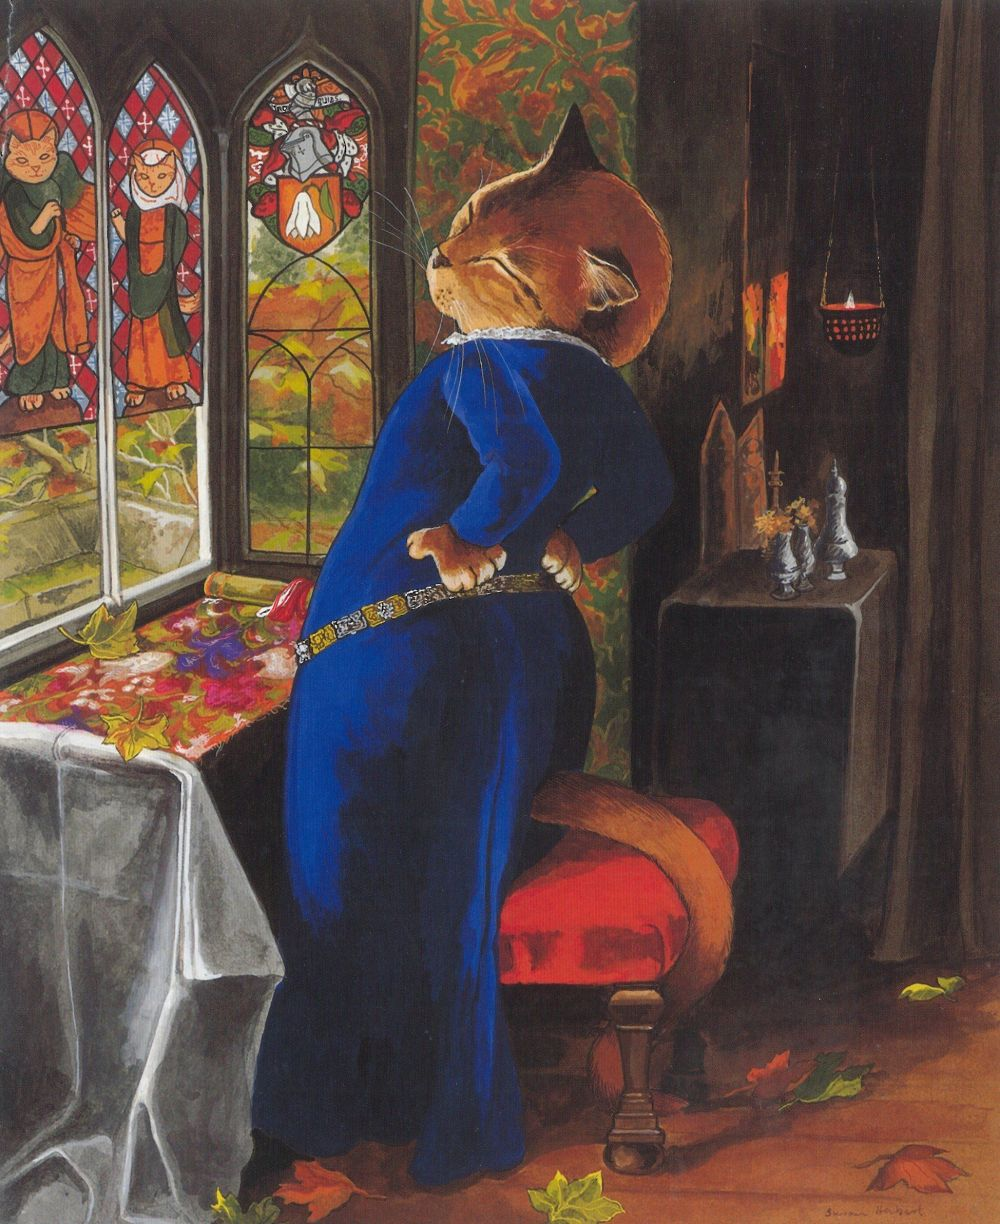 "Mariana, after Sir john Everett Millais (<a href=""https://www.tate.org.uk/art/artworks/millais-mariana-t07553"" target=""_blank"